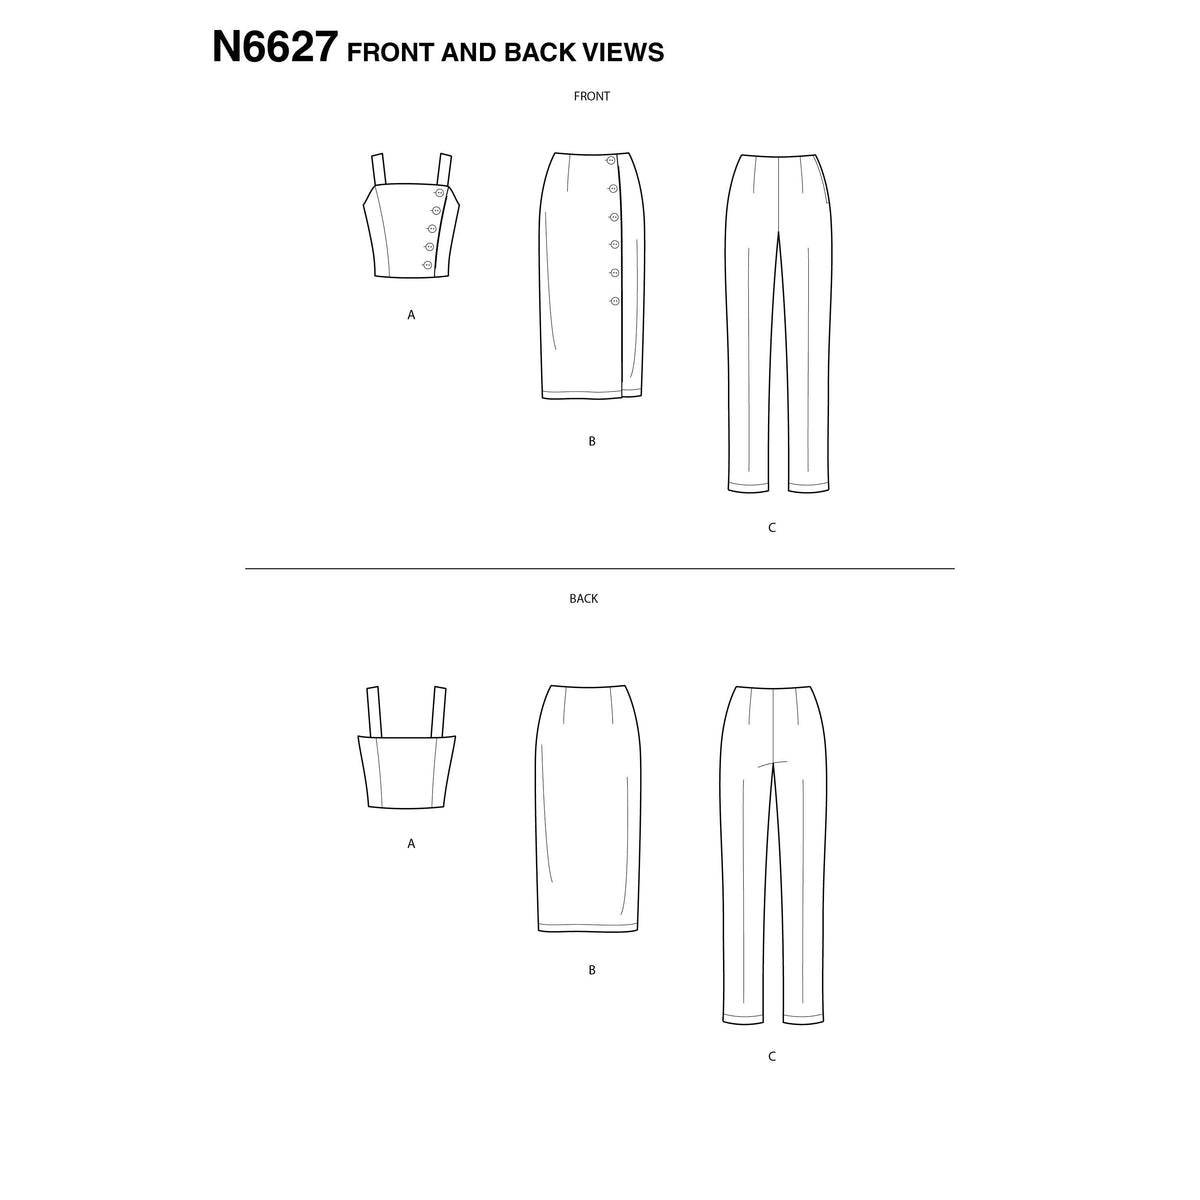 6627 New Look Sewing Pattern N6627 Misses' Top, Skirt, And Pants